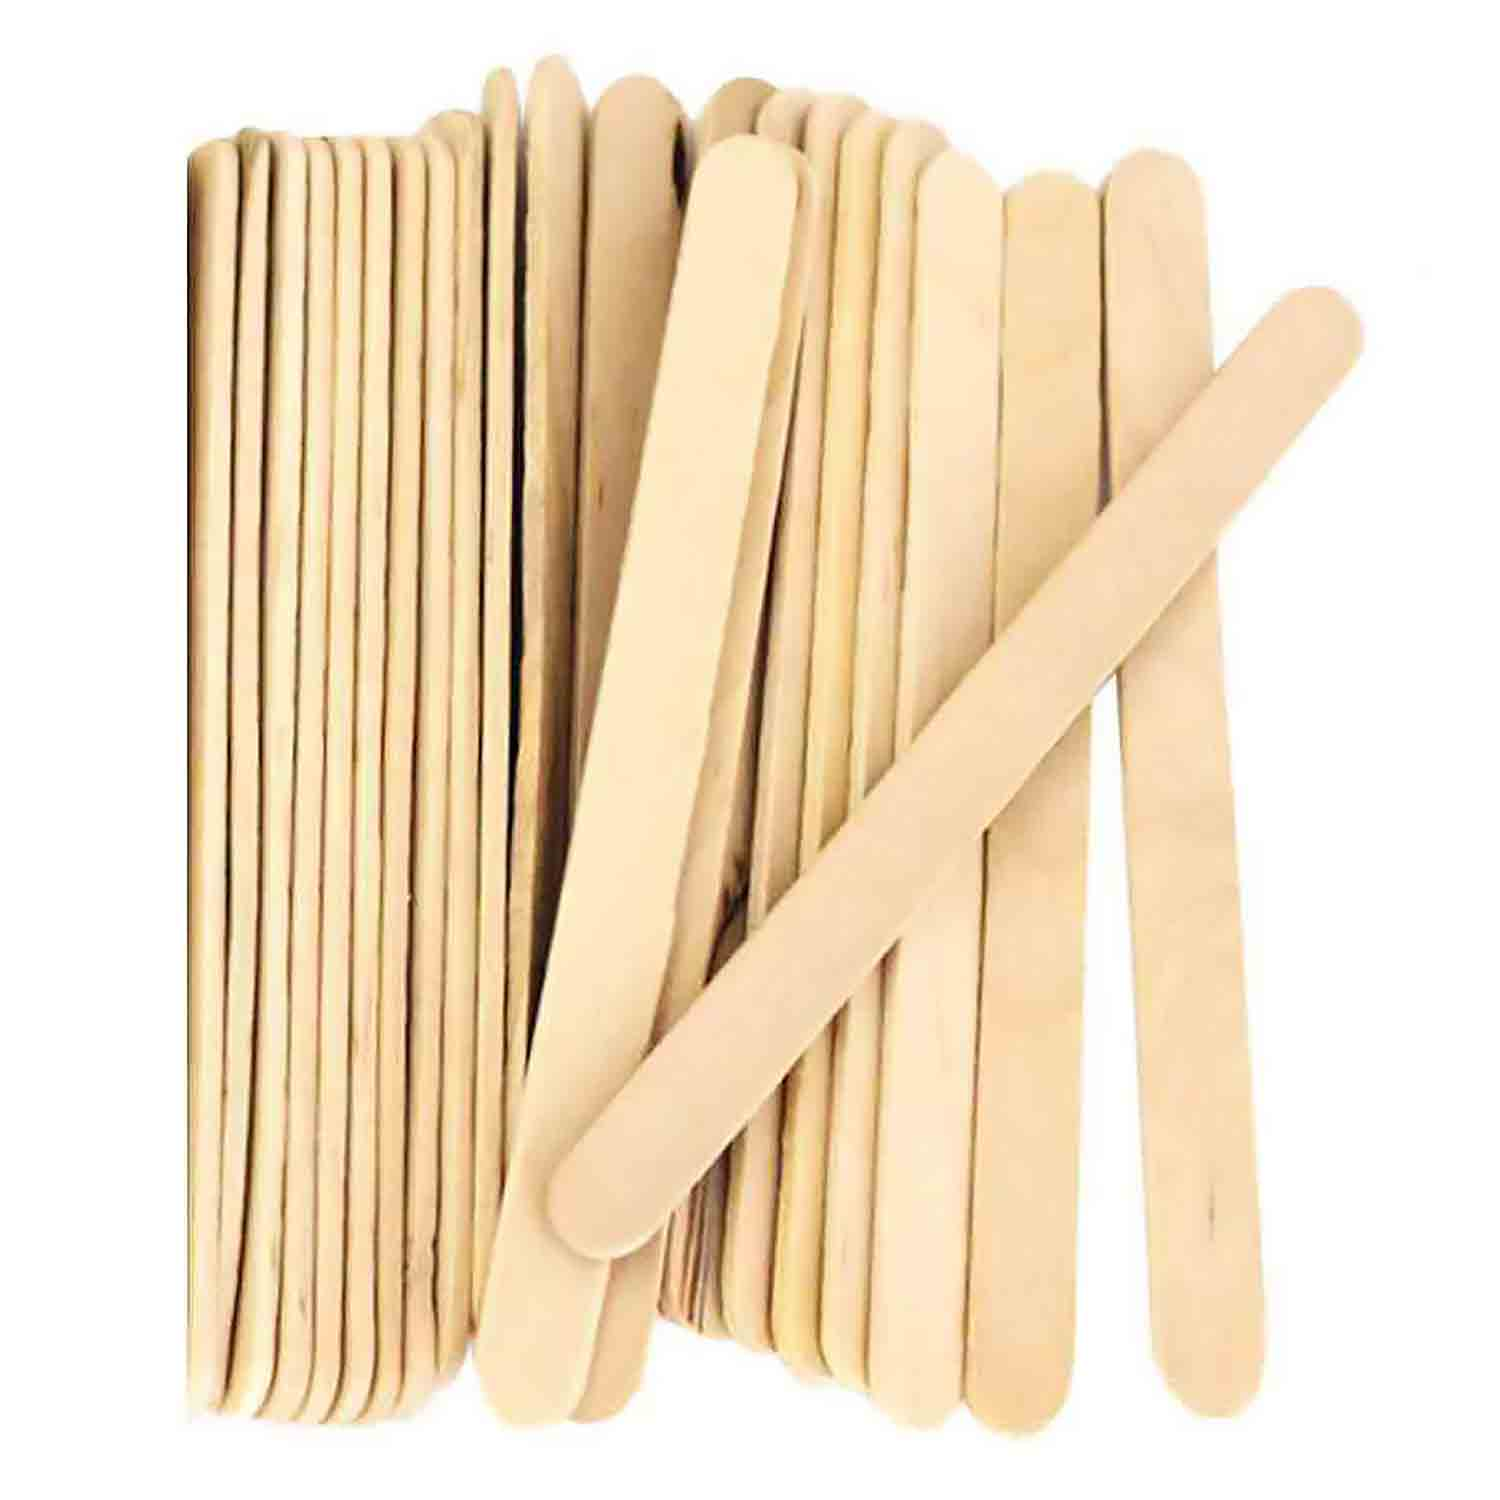 Popsicle Craft Sticks